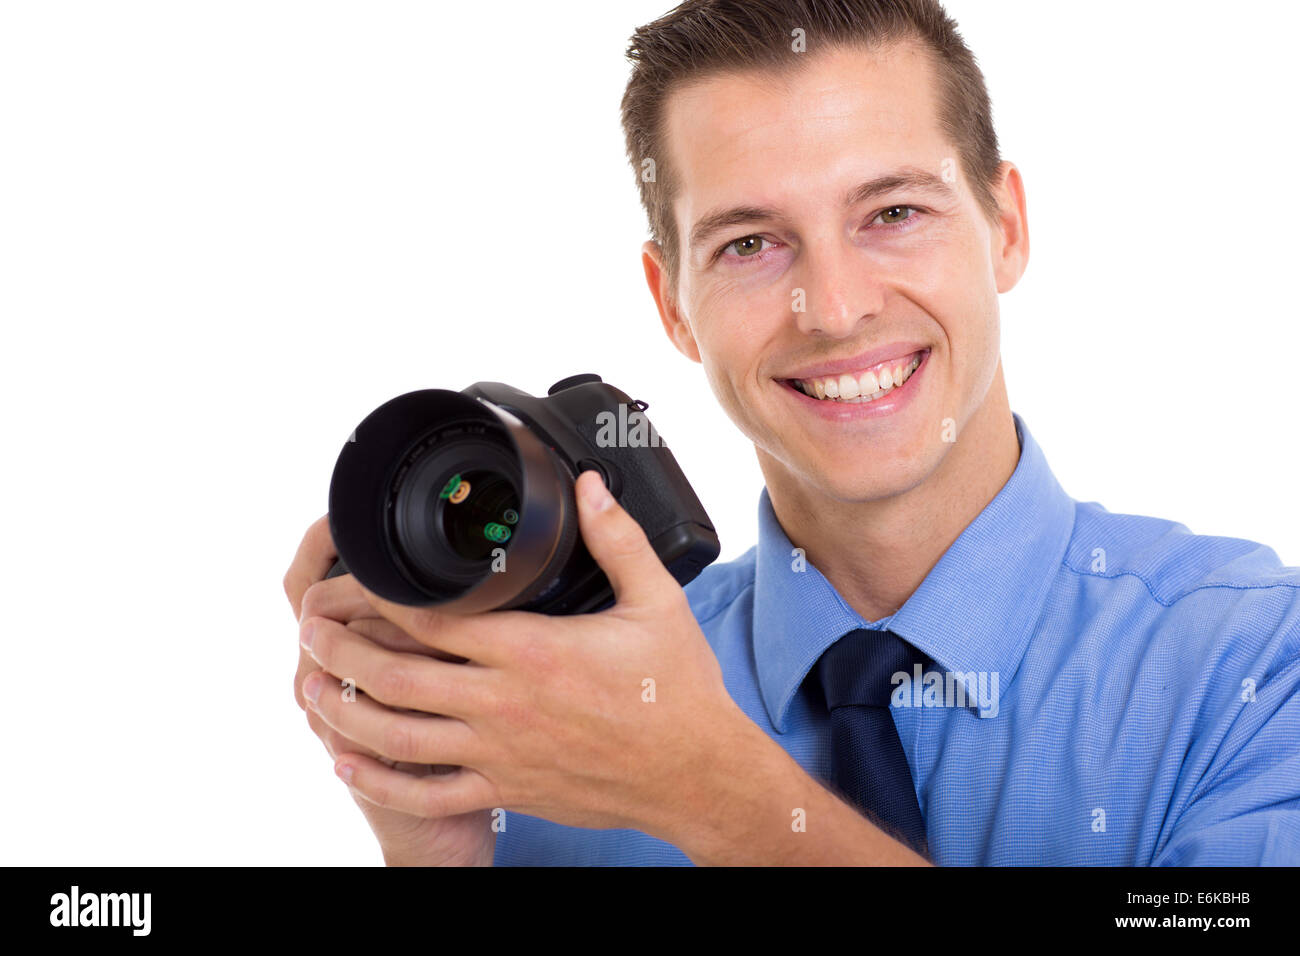 cheerful photographer holding a DSLR camera isolated on white - Stock Image